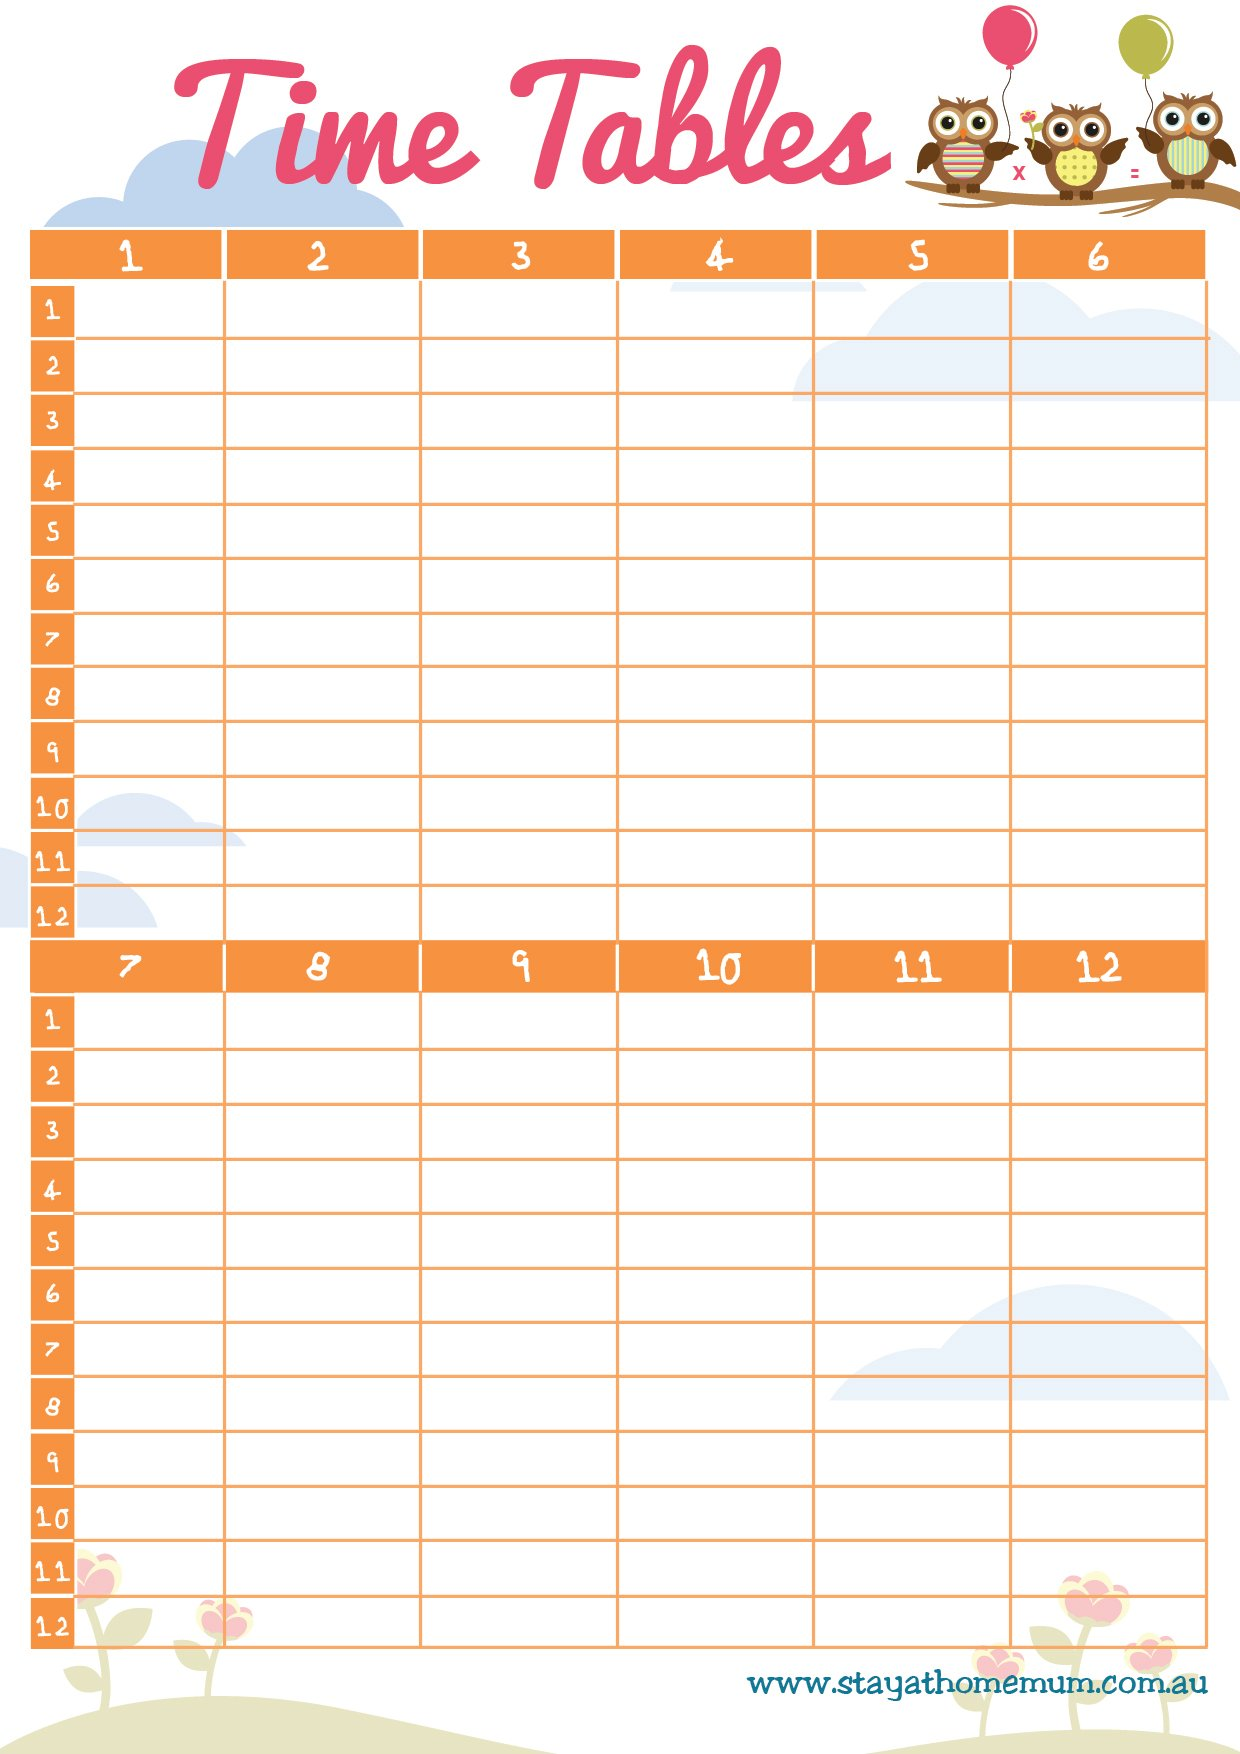 Times Tables Free Printable Stay At Home Mum